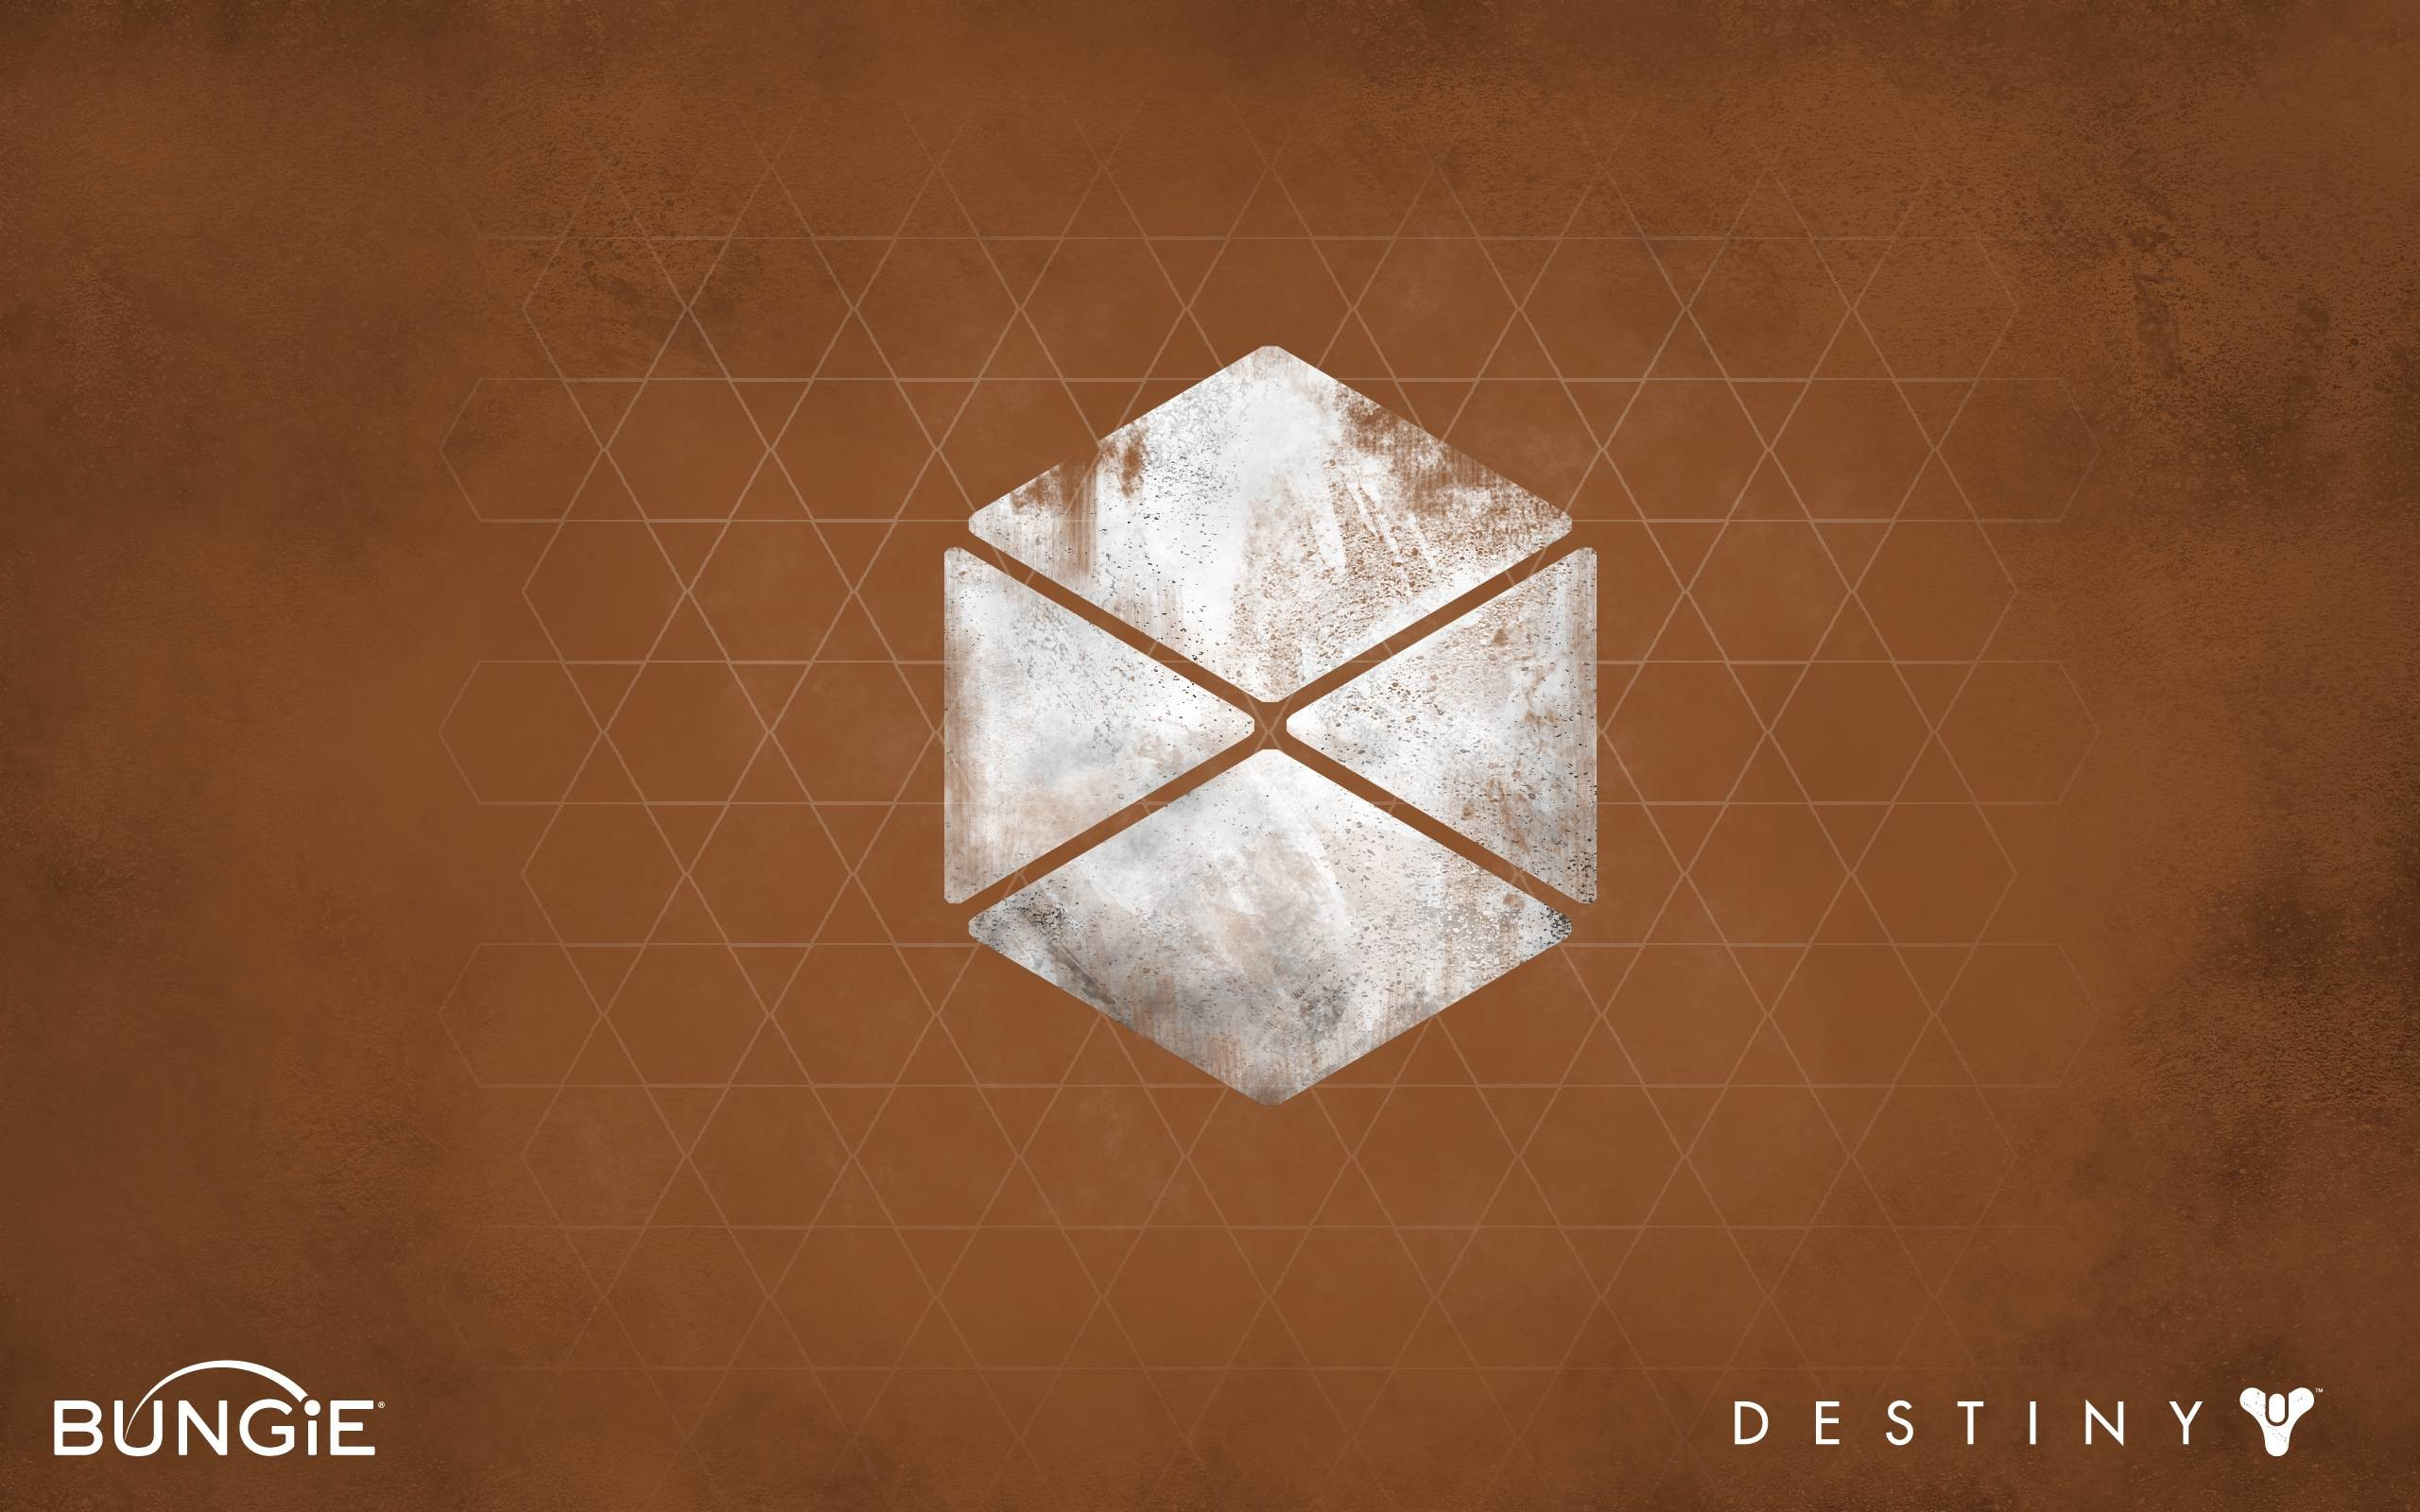 2560x1600 Get free high quality HD wallpapers destiny vanguard iphone wallpaper